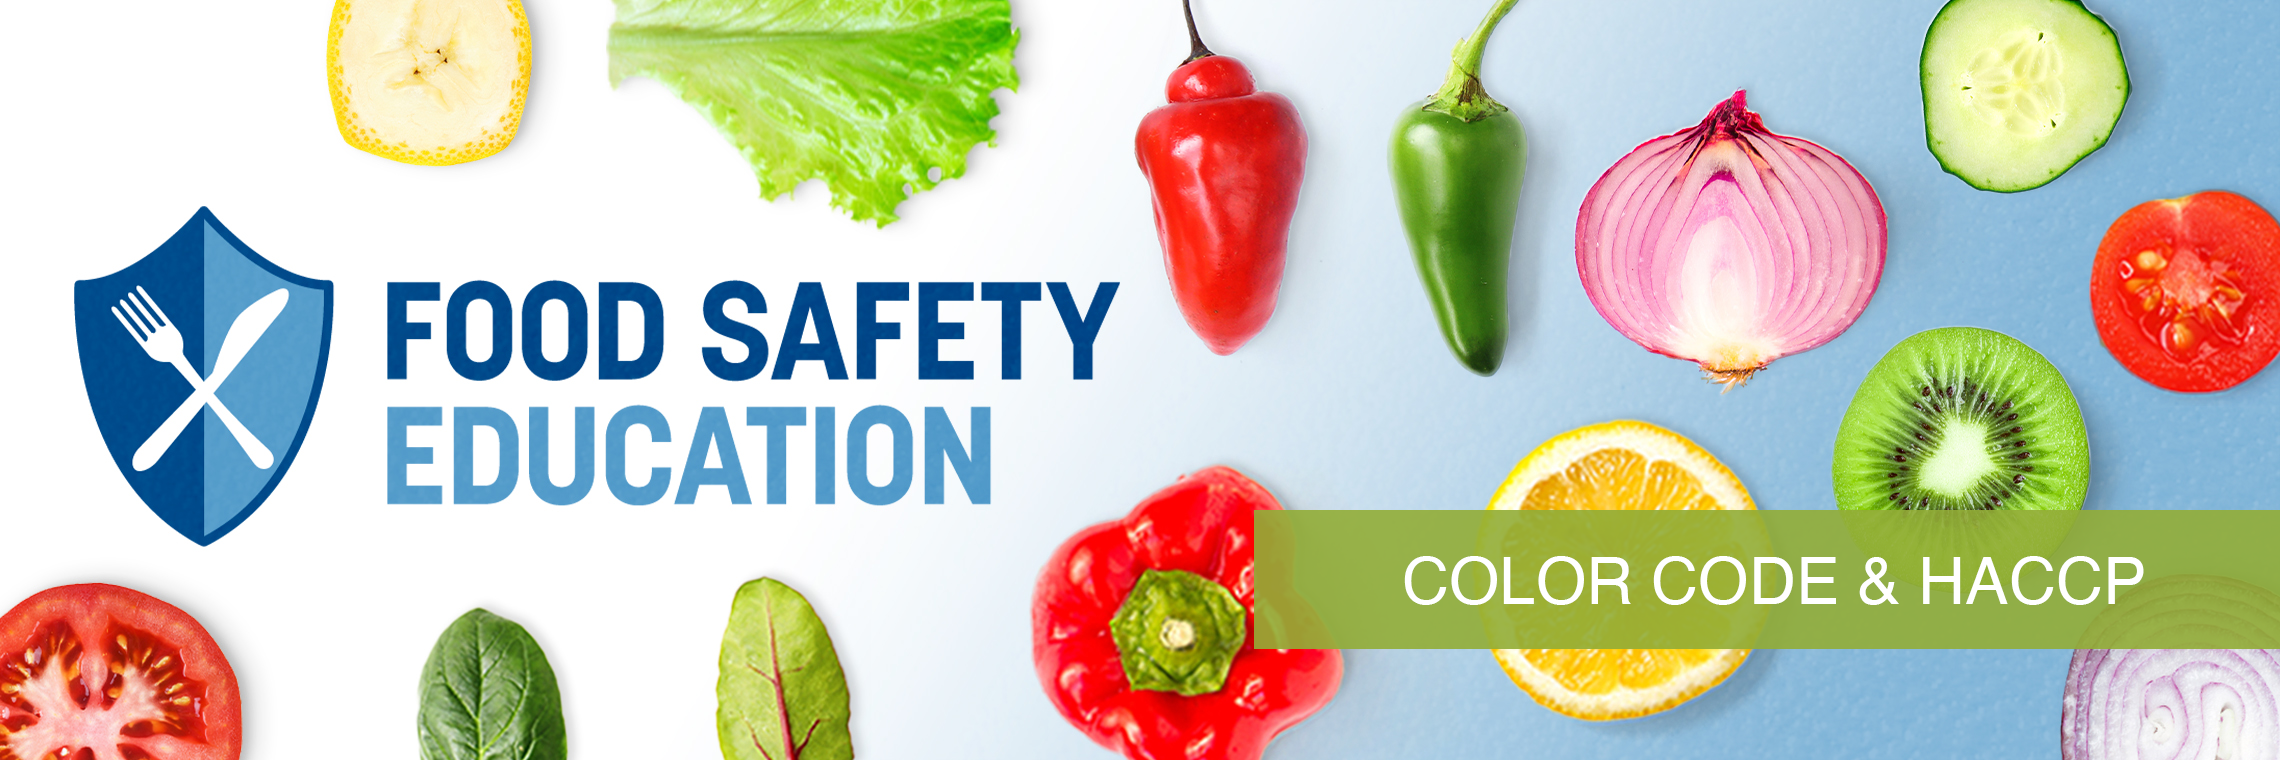 Food Safety Education Month - Color Coding and HACCP